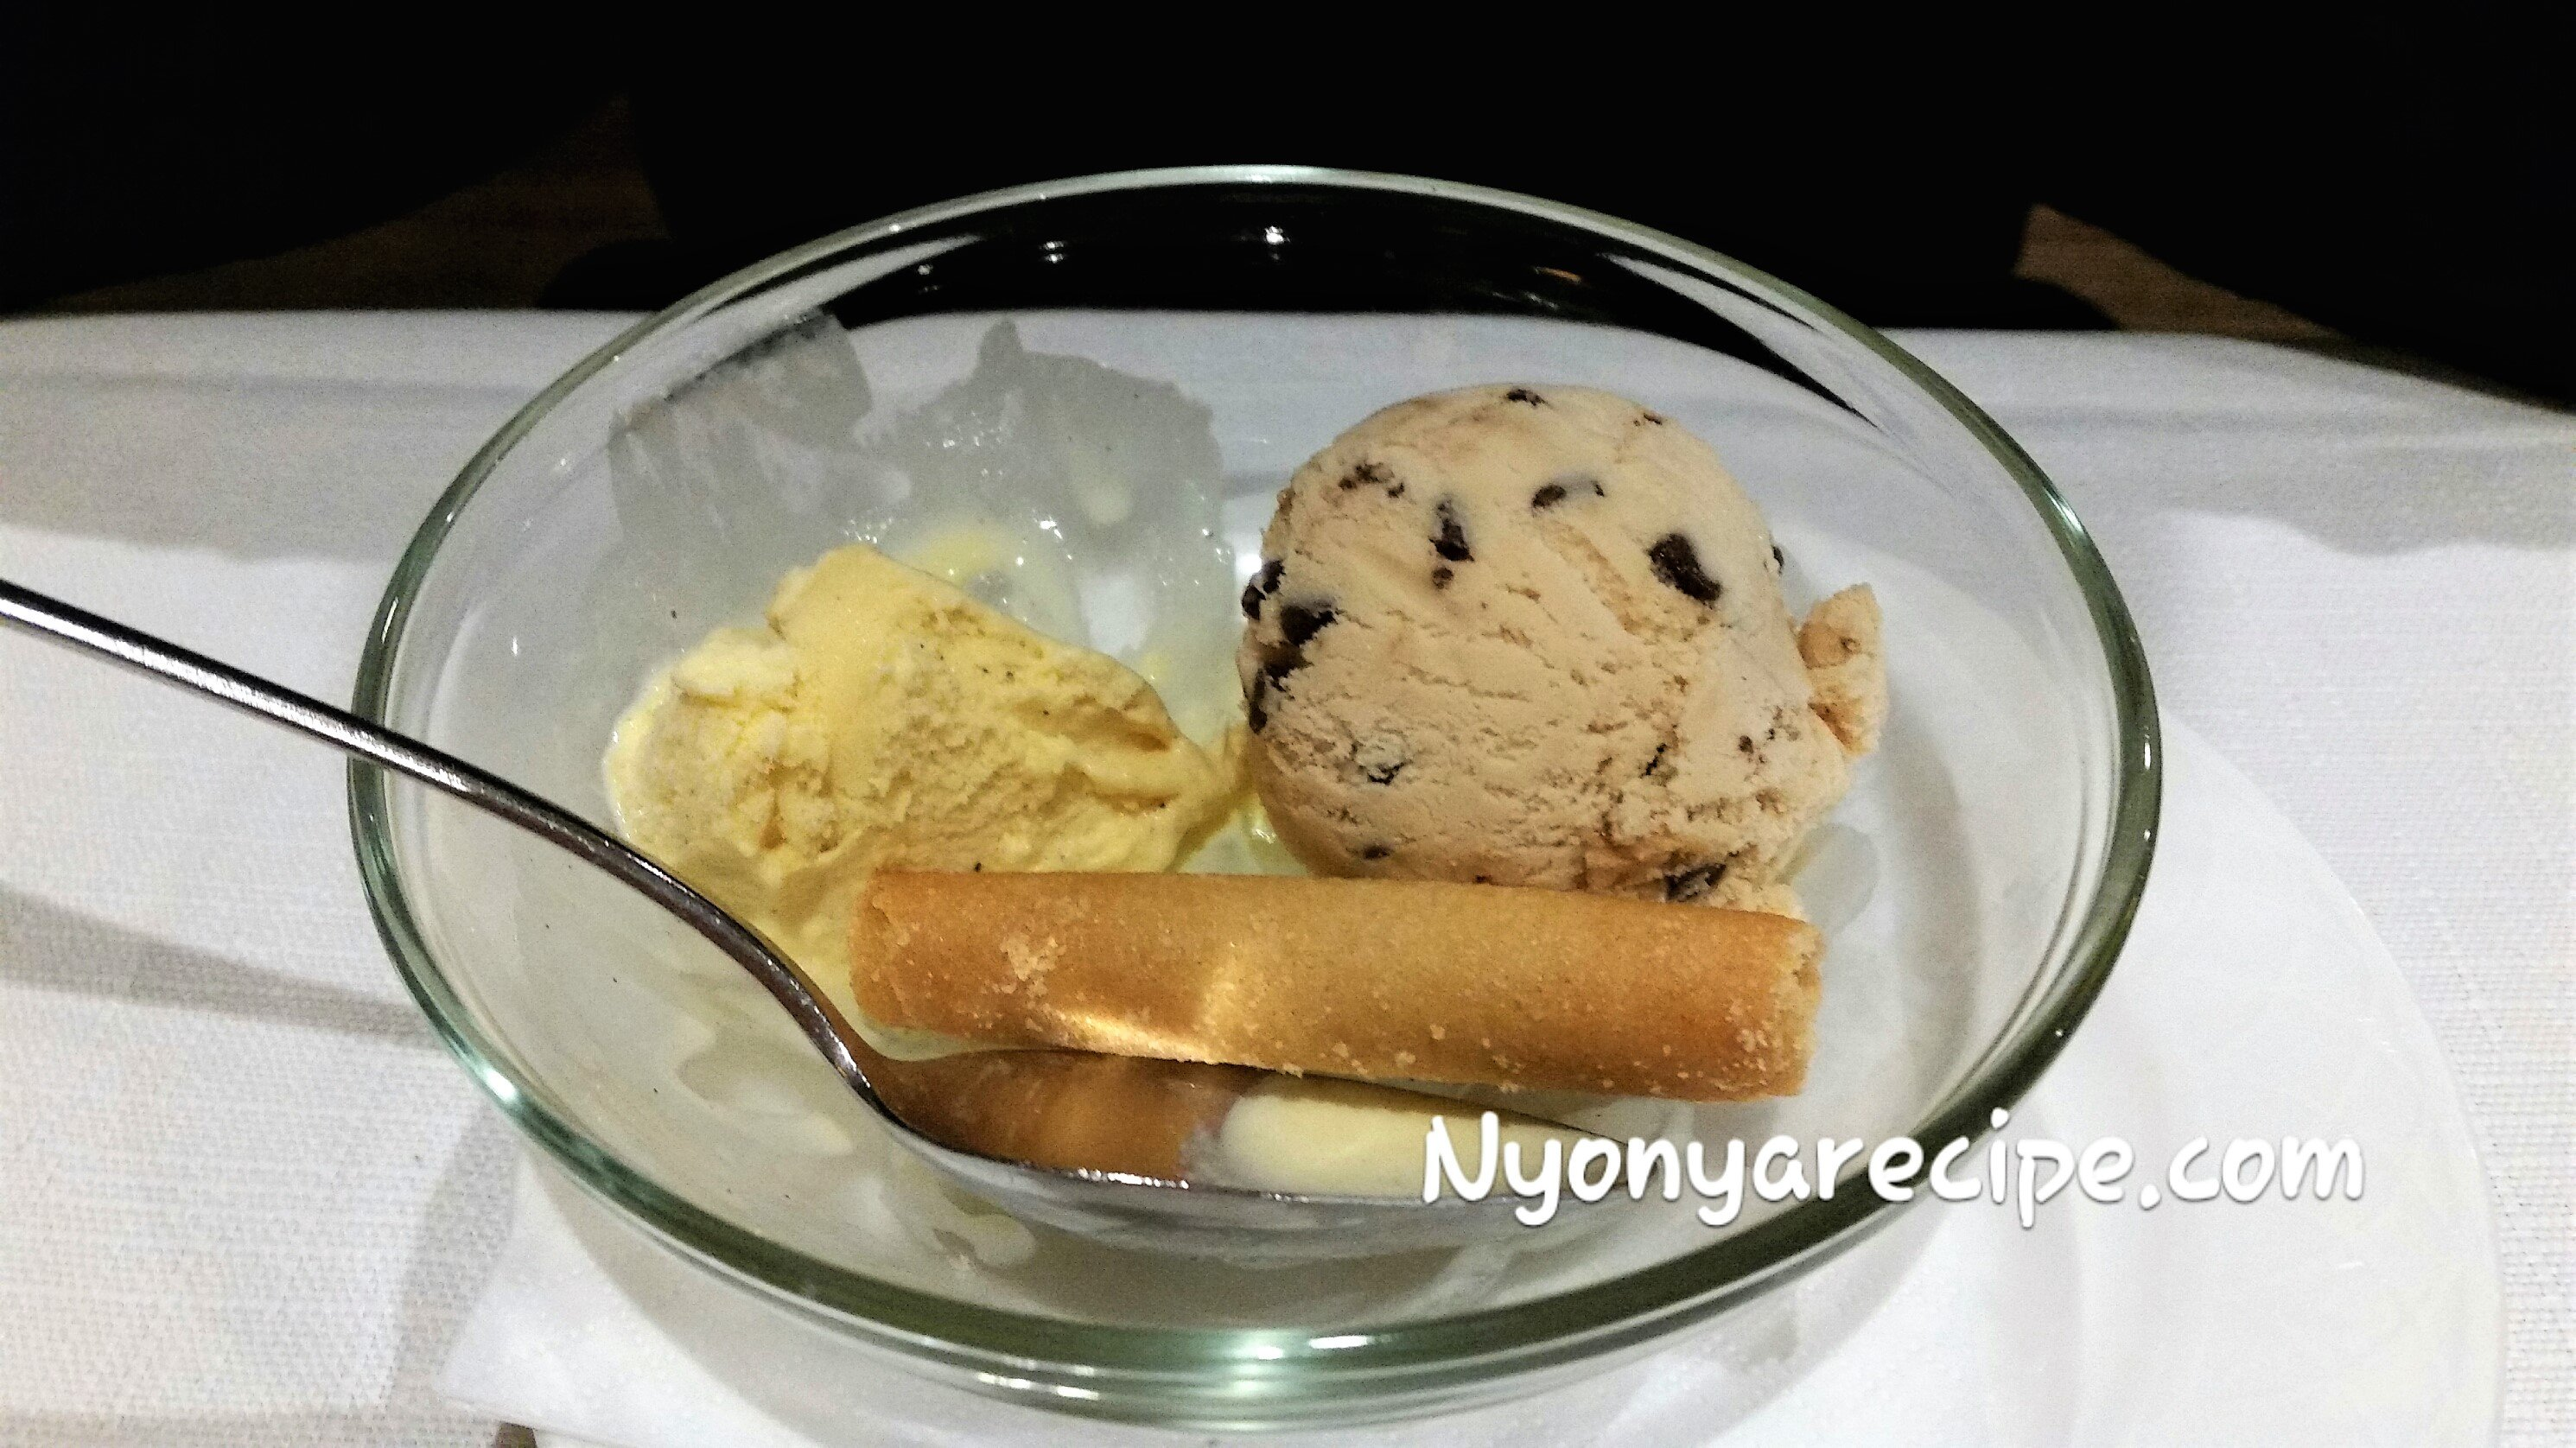 ice cream. Ash fields, lunch, new year, branday snaps